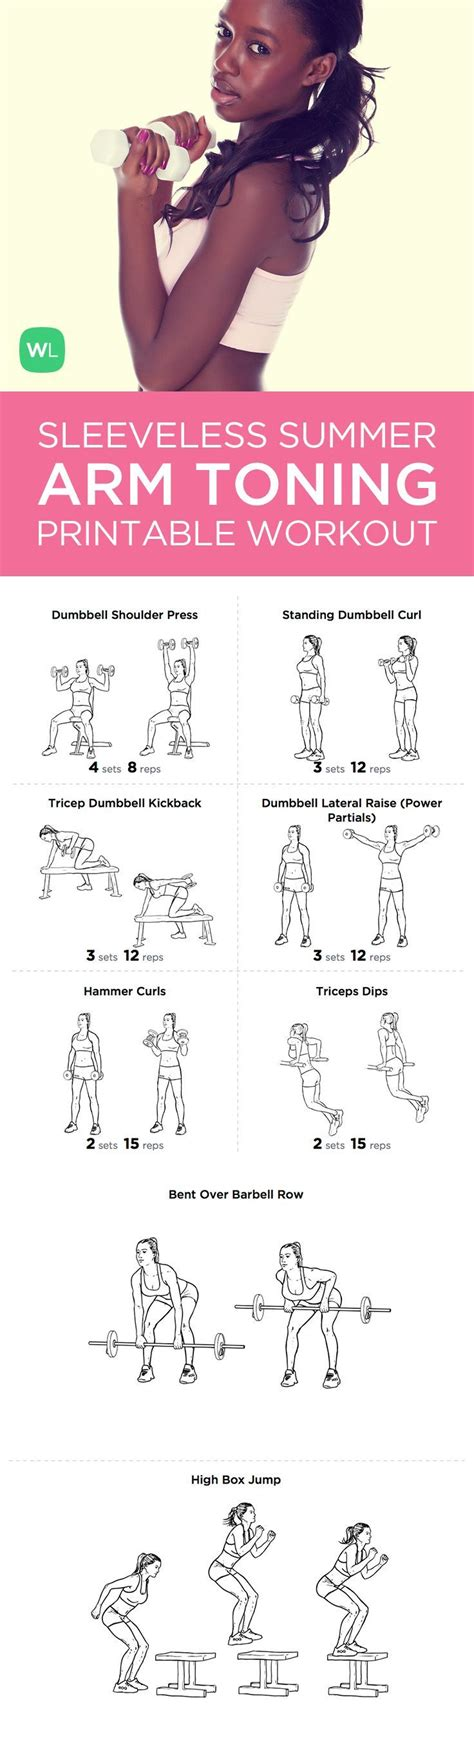 top 8 arm toner workouts for printable workouts